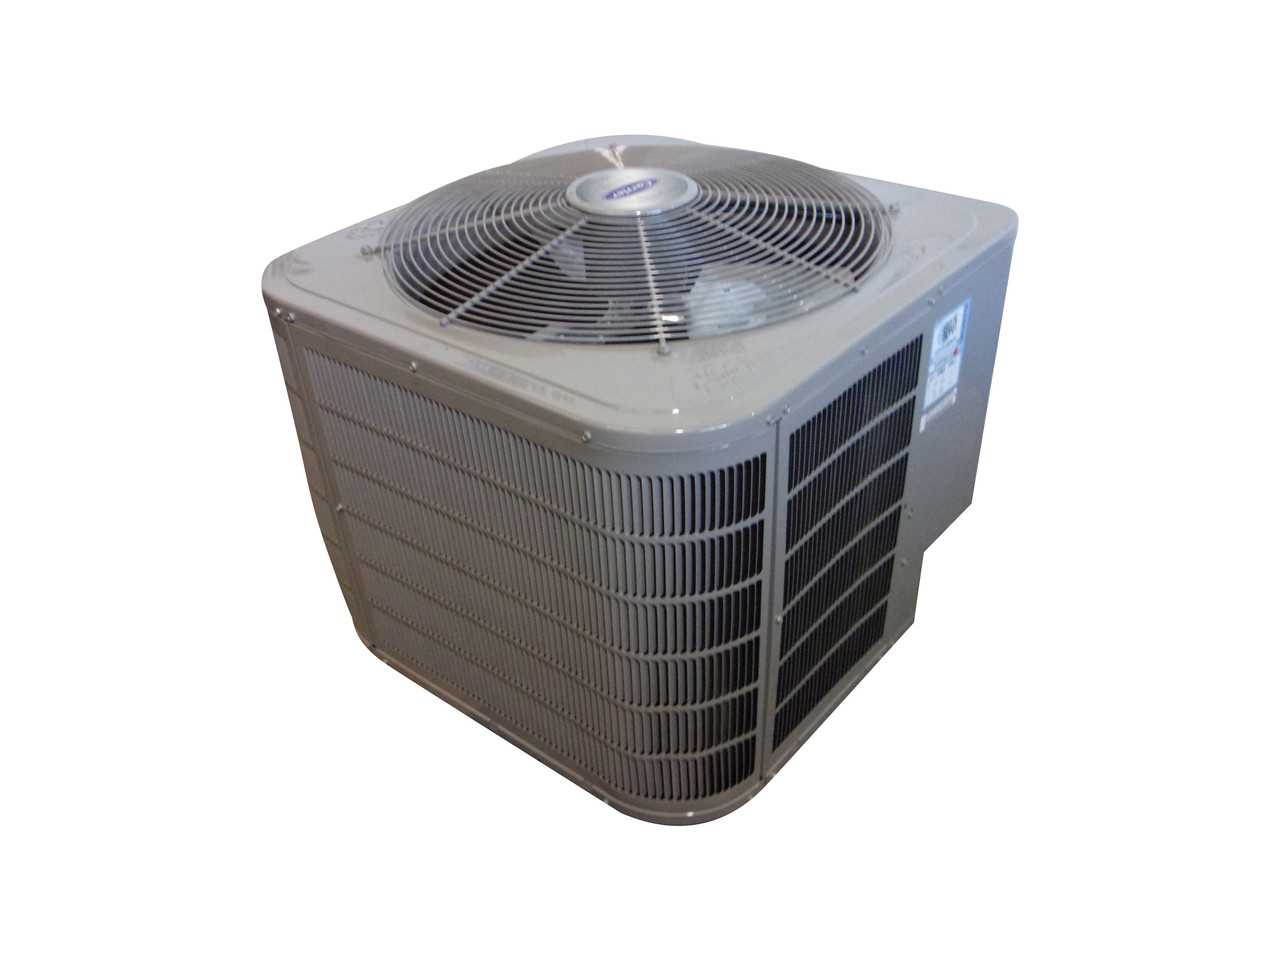 CARRIER Scratch & Dent Central Air Conditioner Condenser 25HCC518A003  ACC-12162